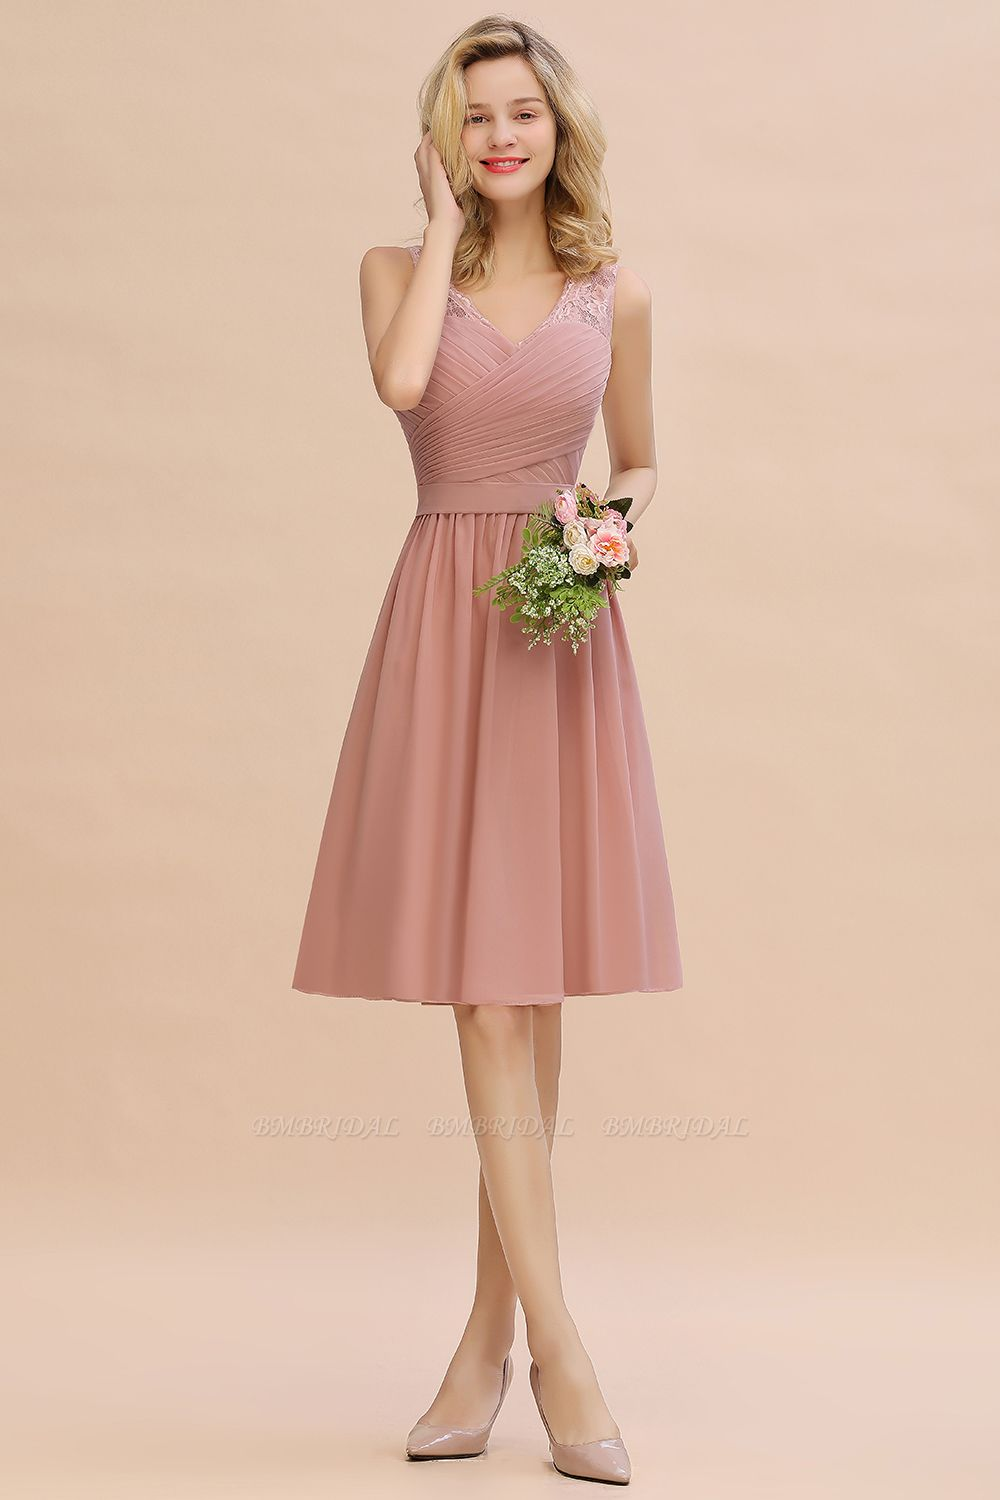 Affordable V-Neck Sleeveless Ruffles Short Lace Bridesmaid dresses Online